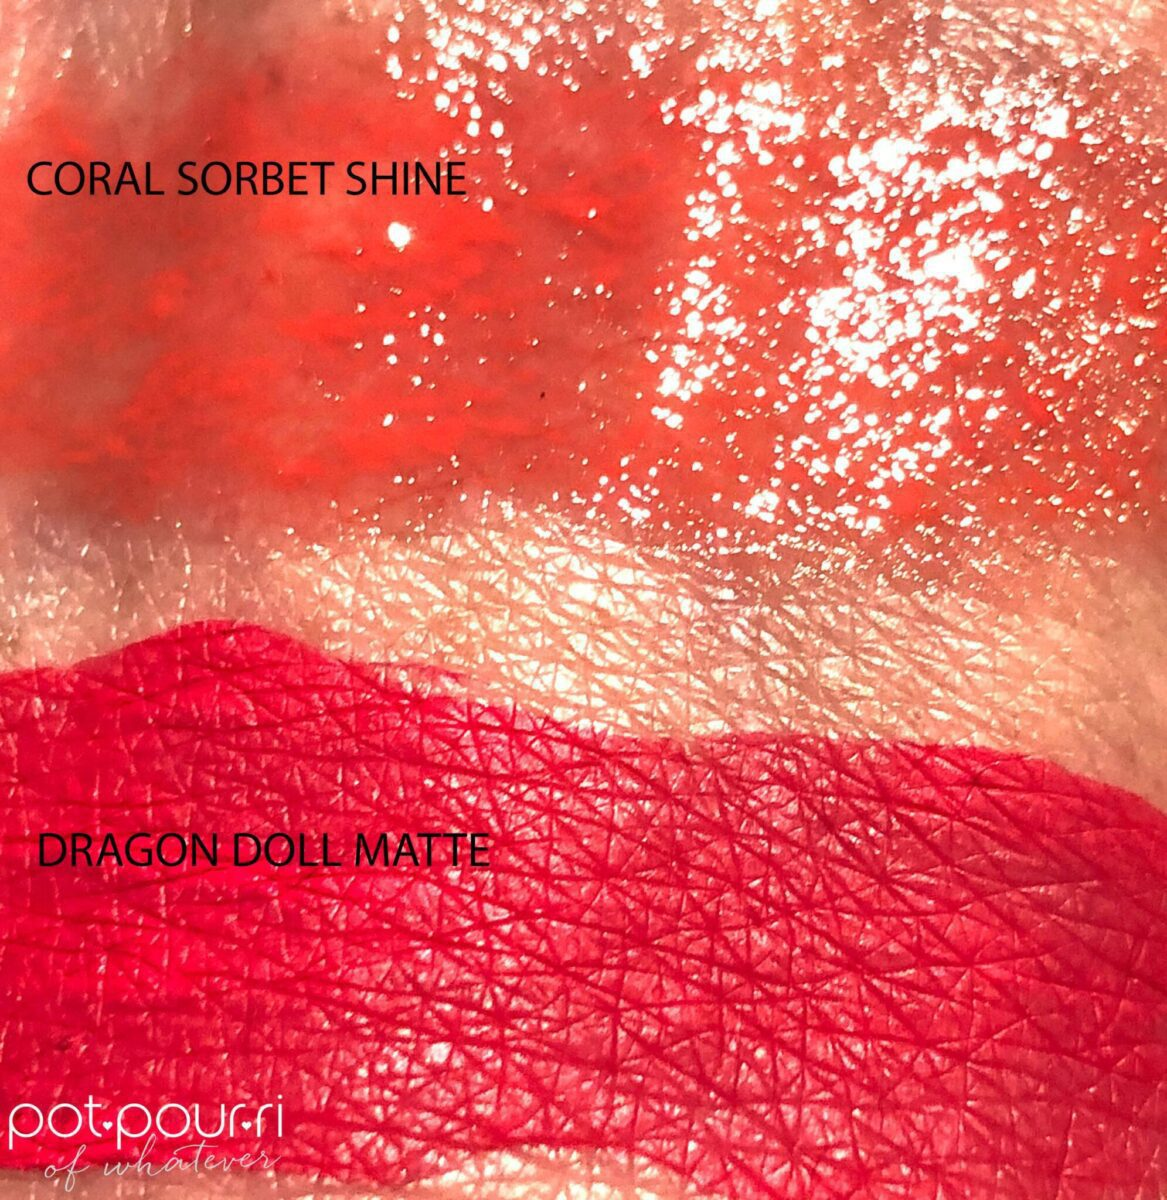 SWATCHES CORAL SORBET SHINE AND DRAGON DOLL MATTE FINISHES